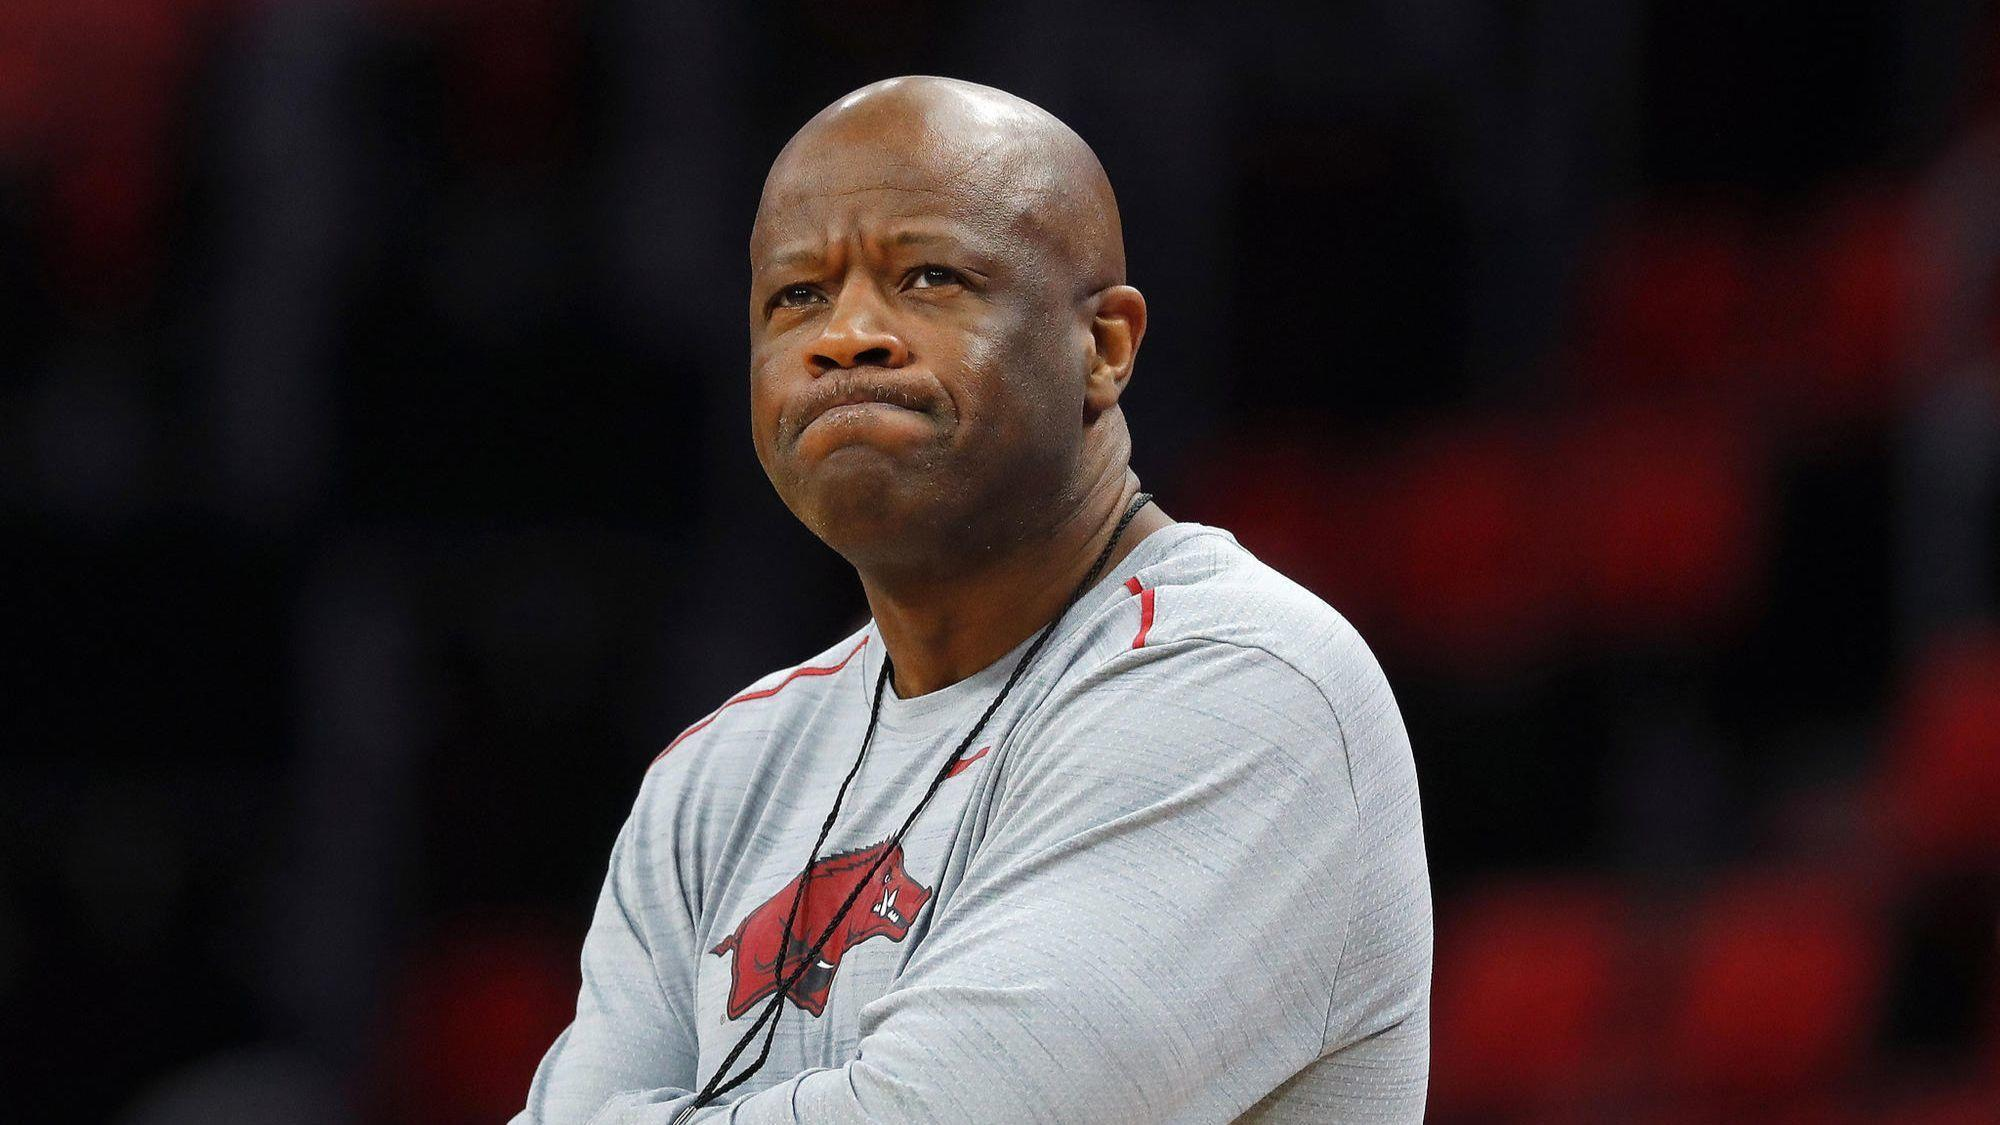 Turned down by Loyola's Porter Moser and others, St. John's hires Mike Anderson as coach